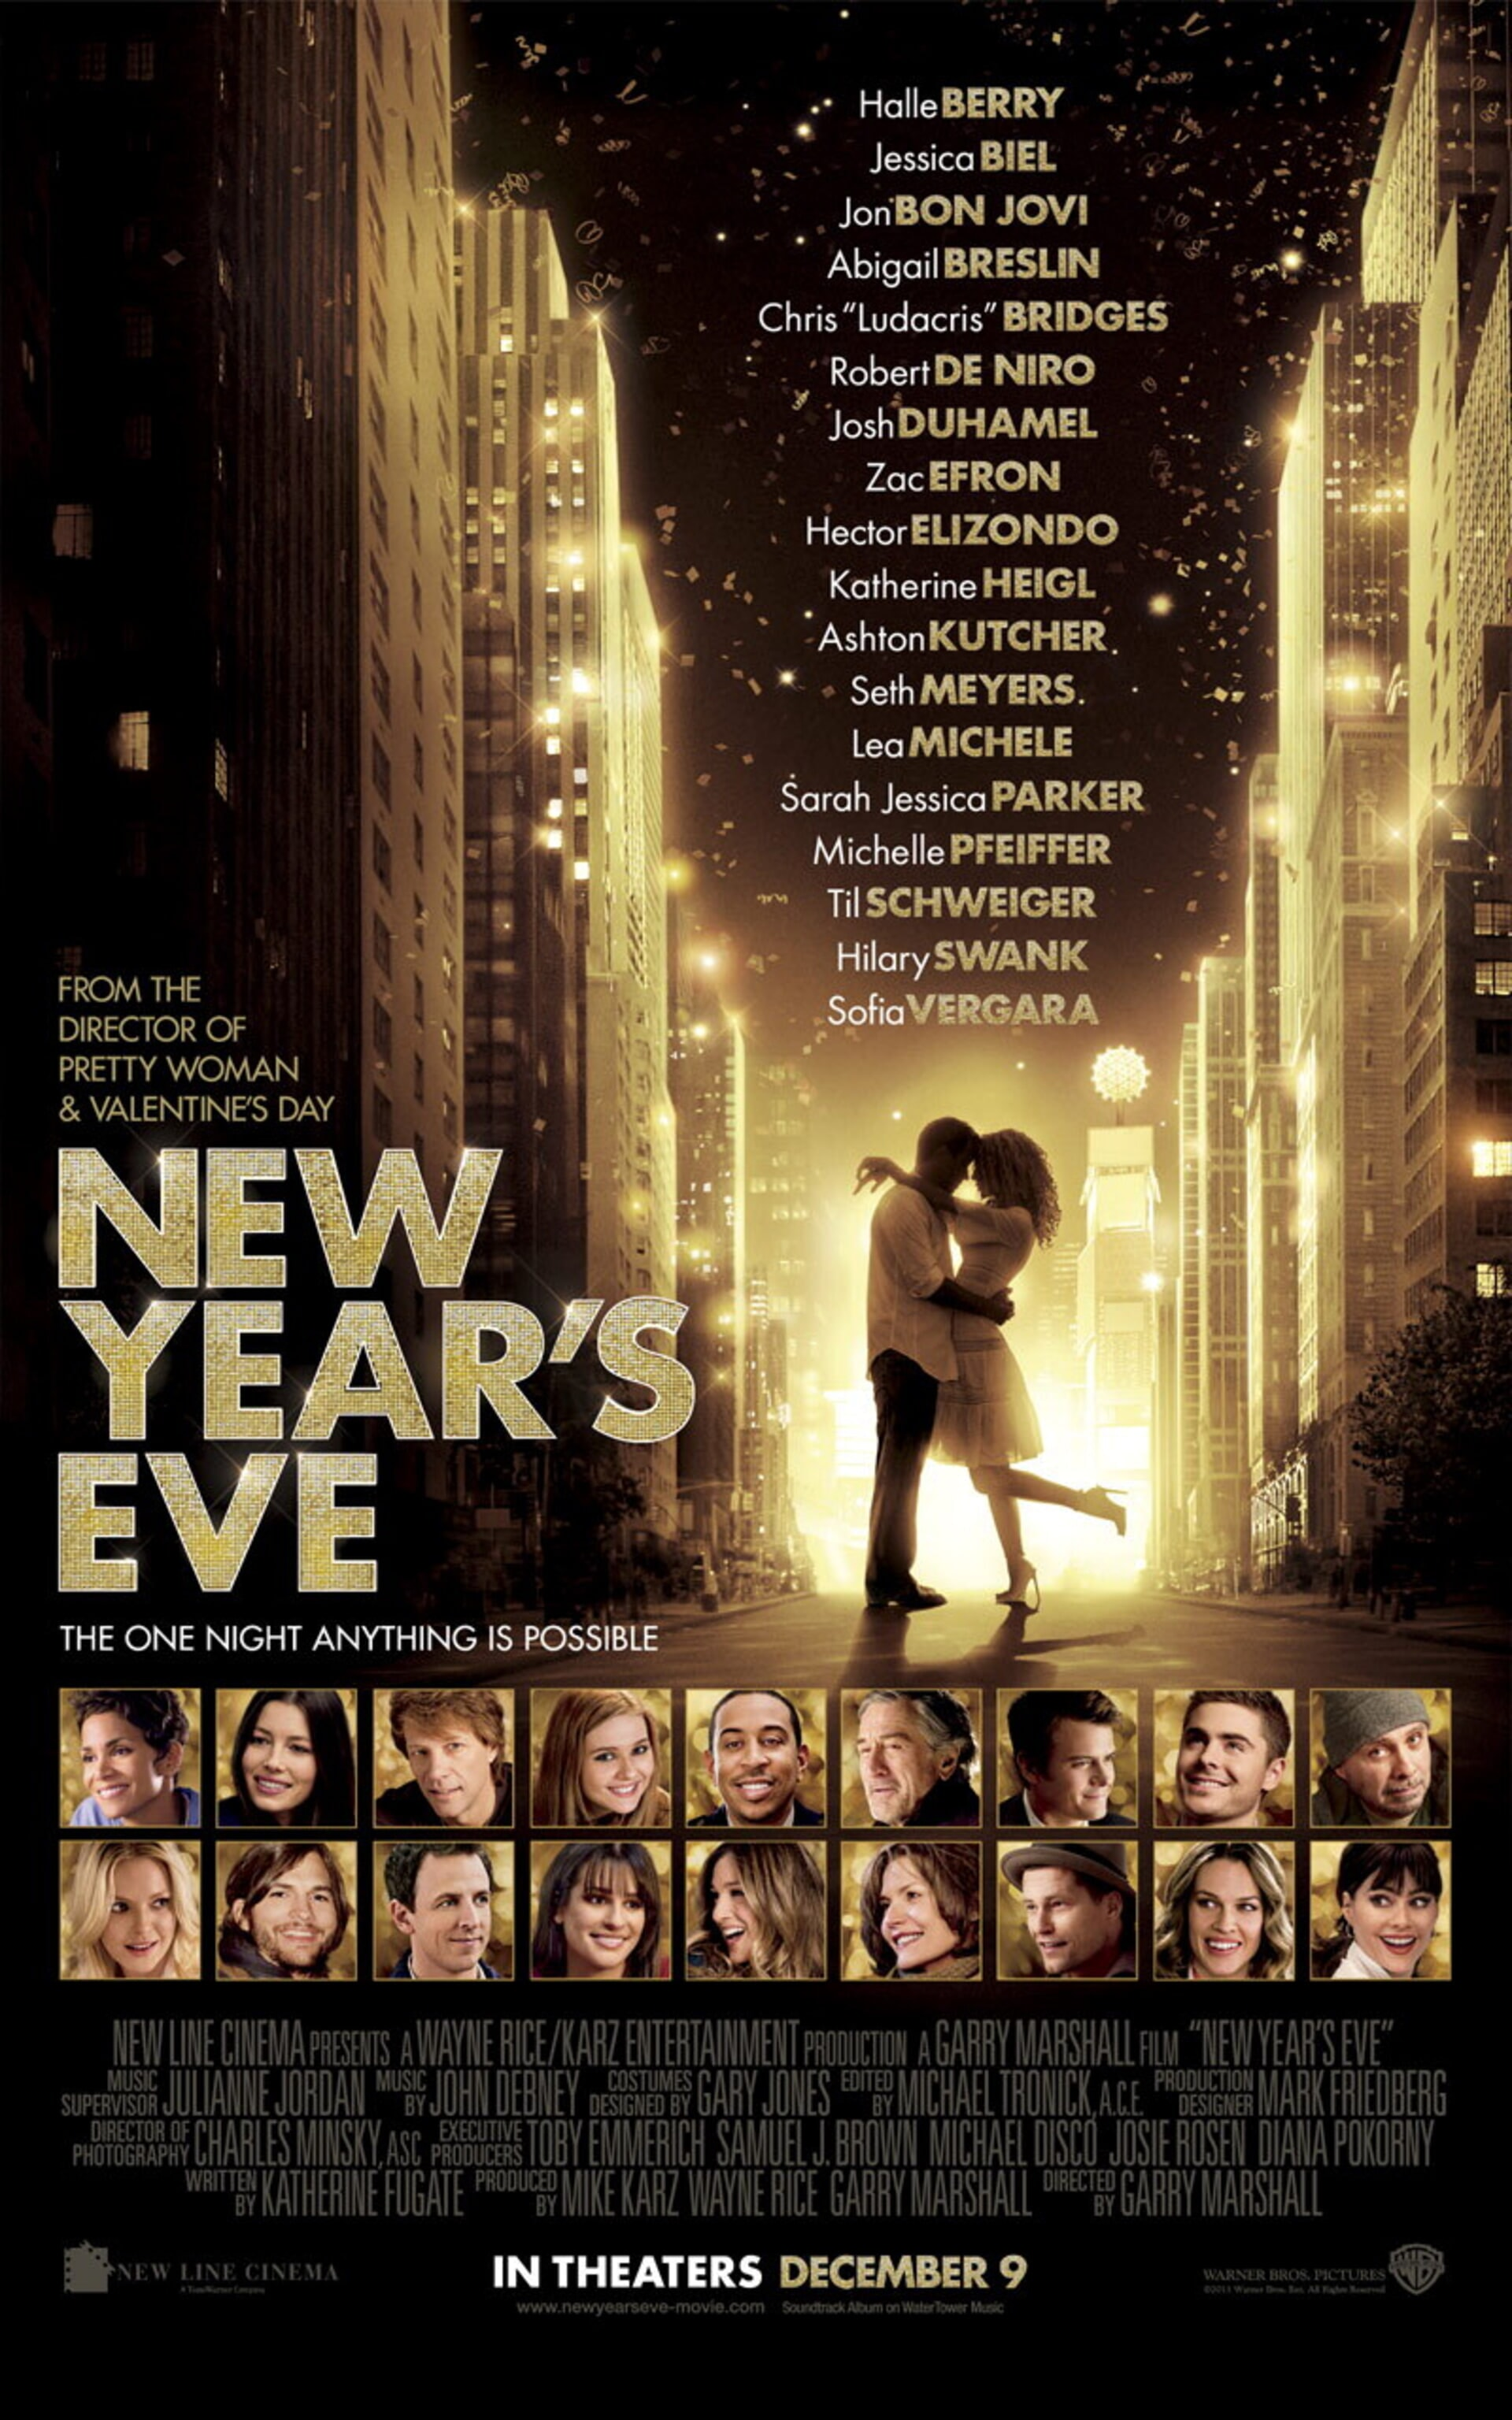 New Year's Eve - Poster 2